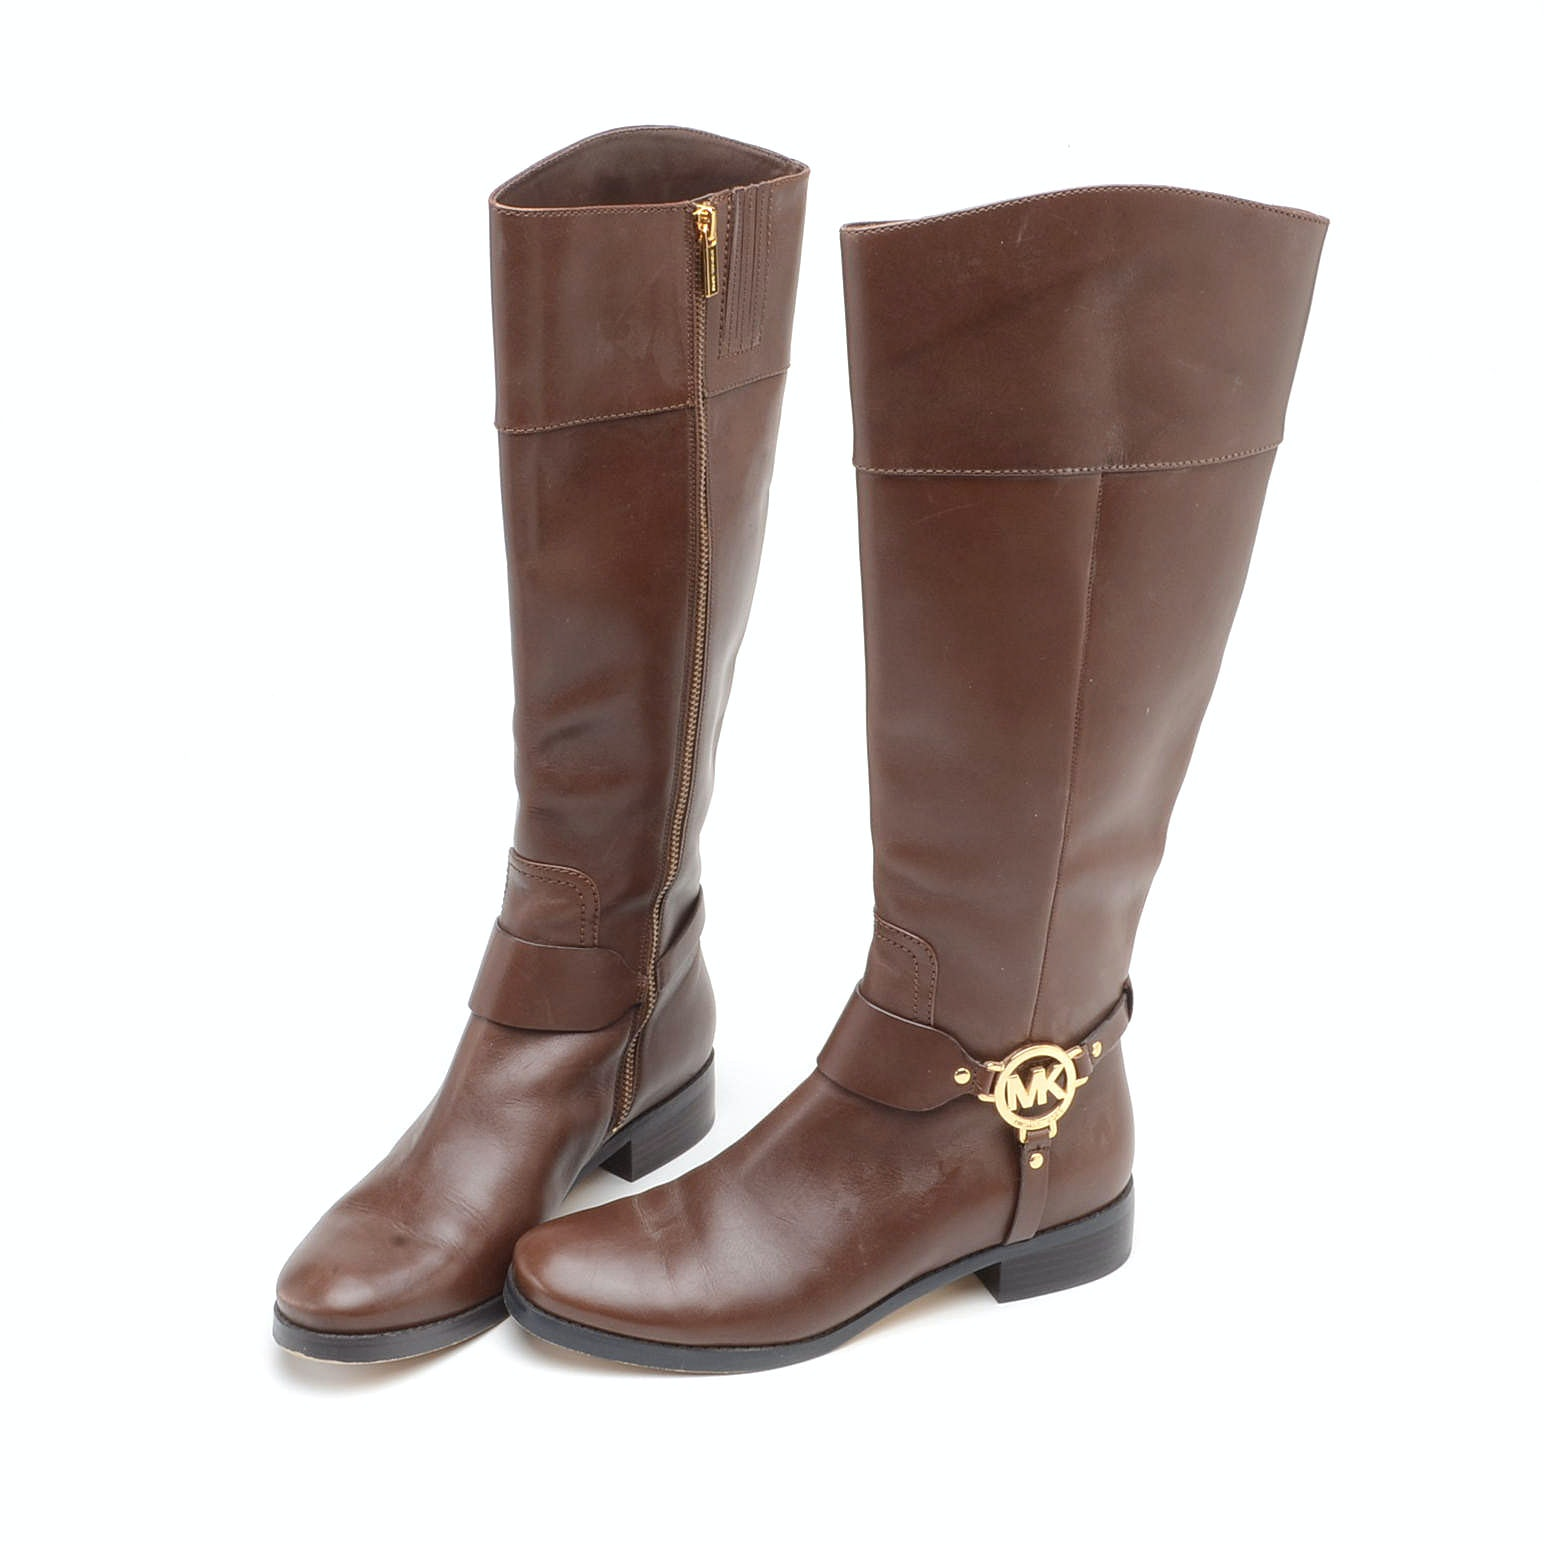 Pair of Michael Kors Brown Leather Fulton Harness Riding Boots